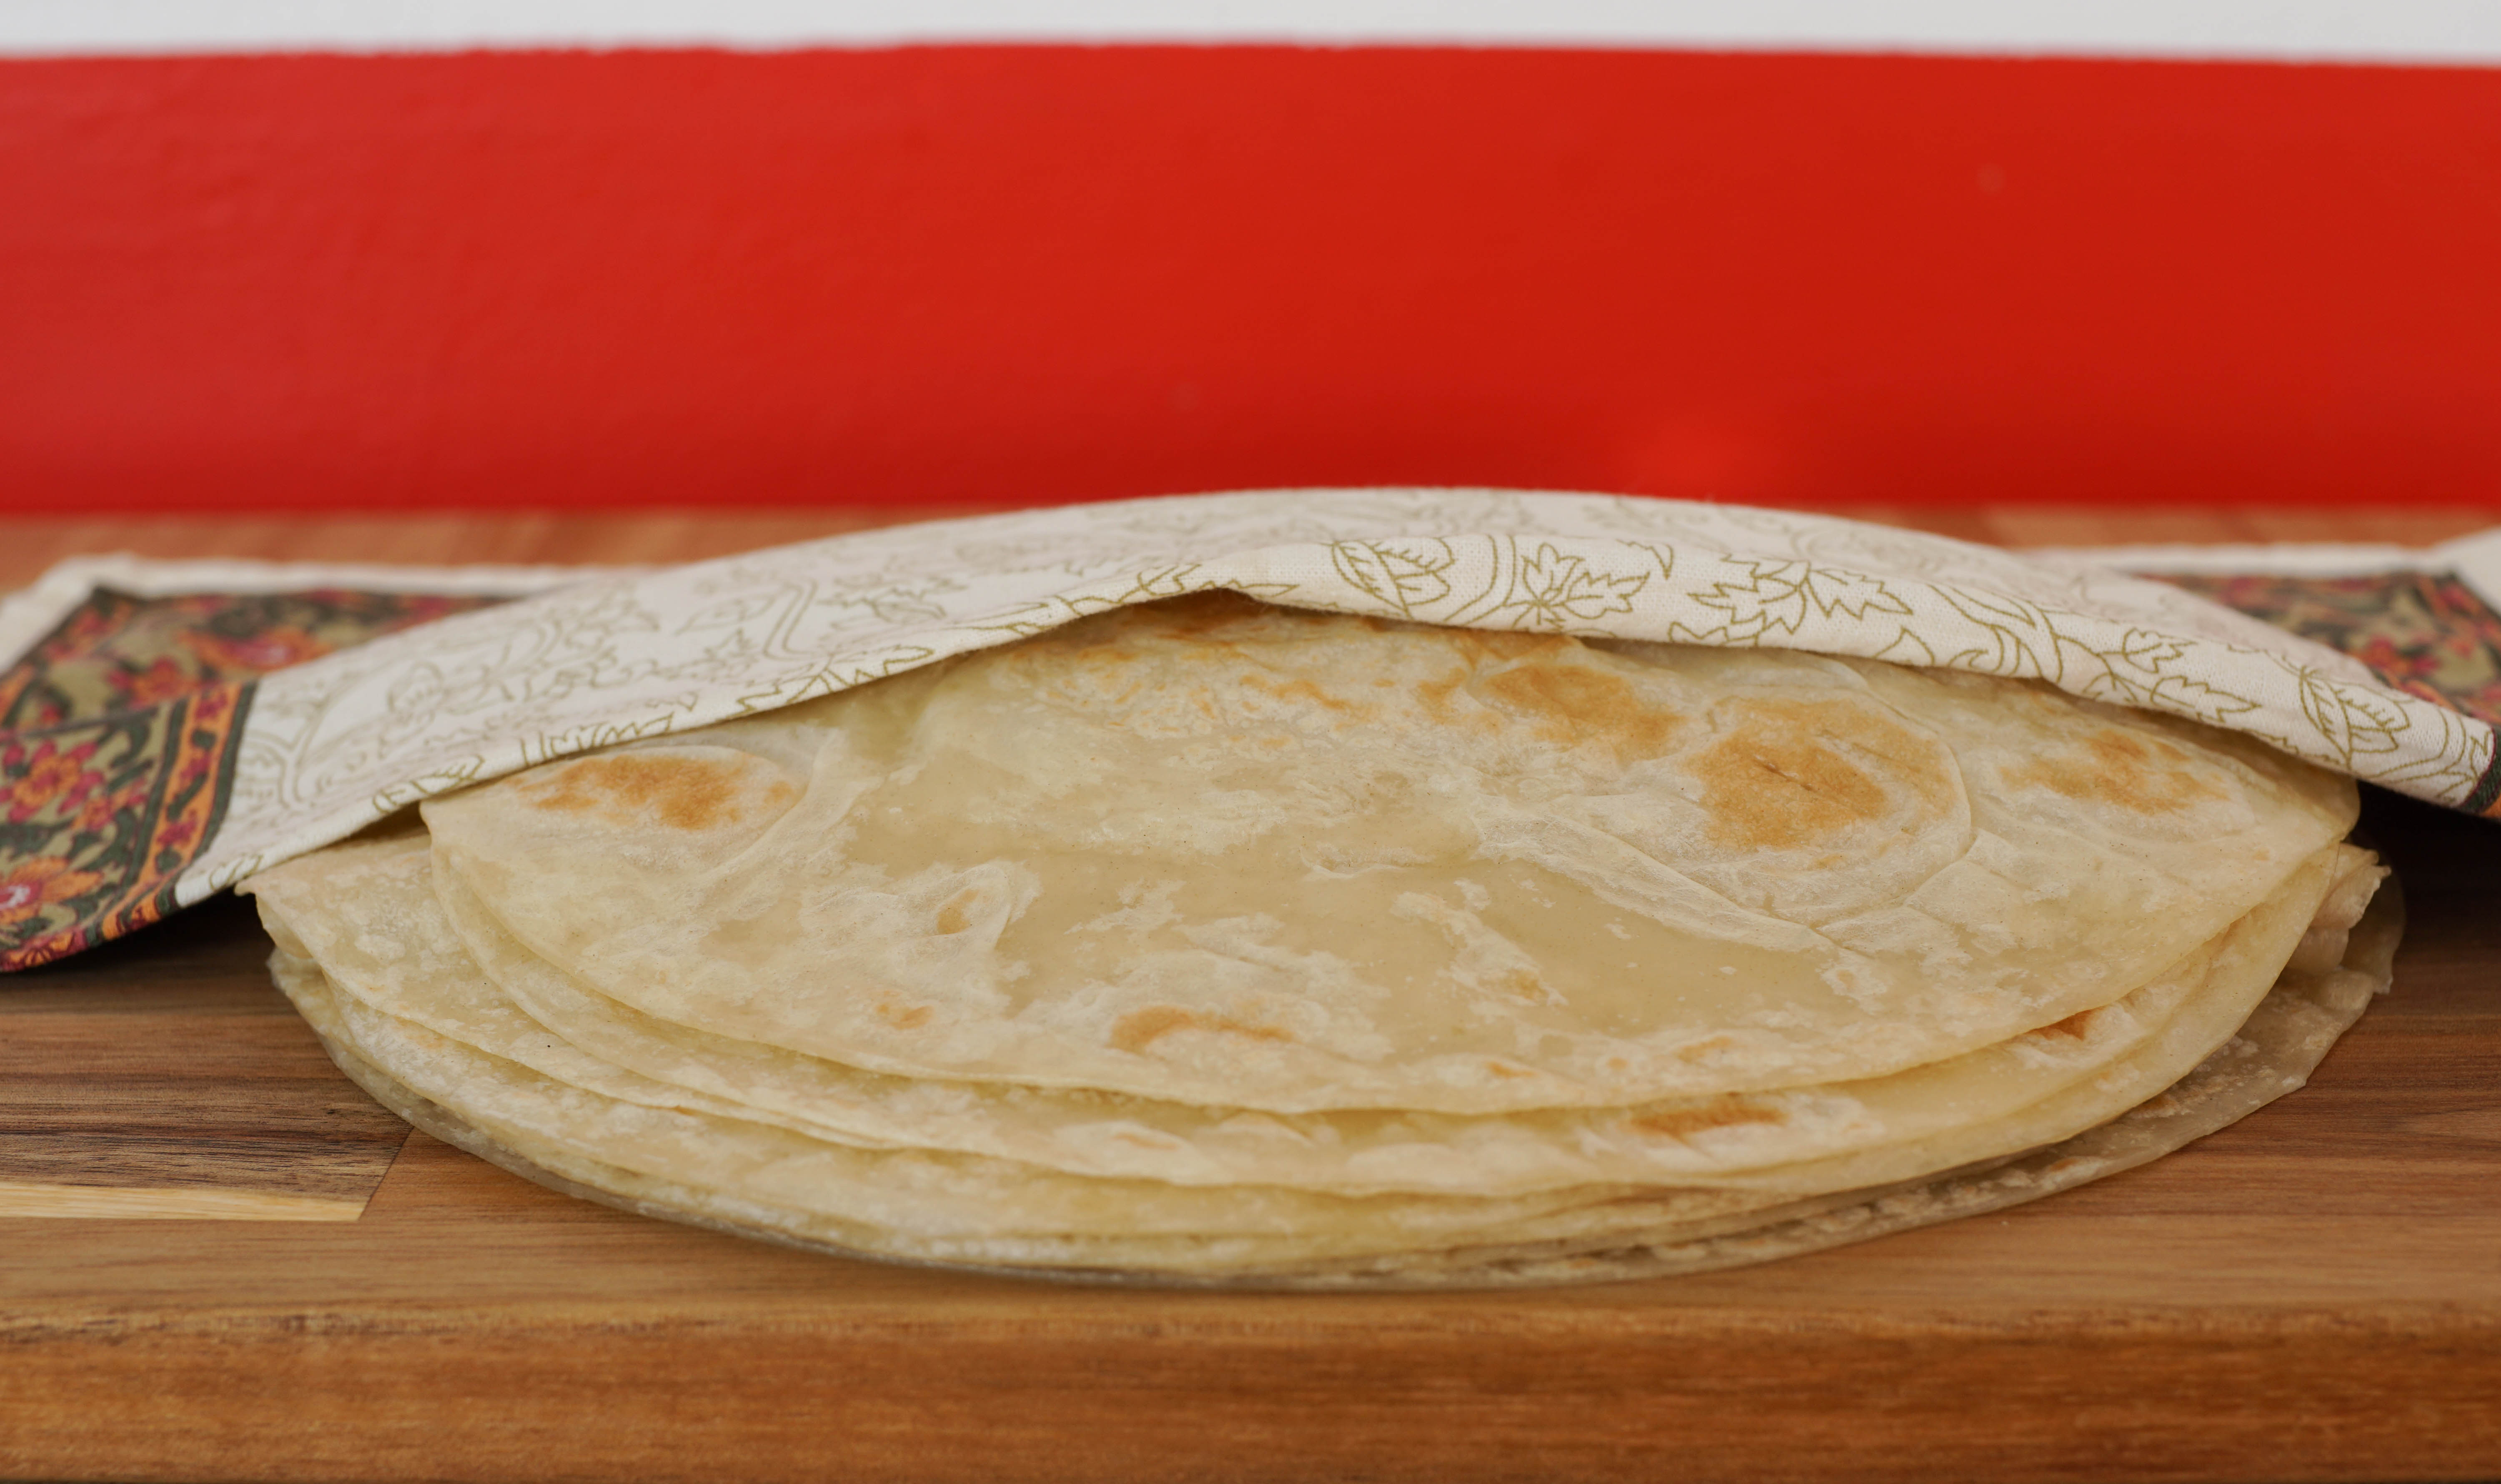 Thanks to This Restaurant, Flour Tortillas Are Cool Again in Southern California